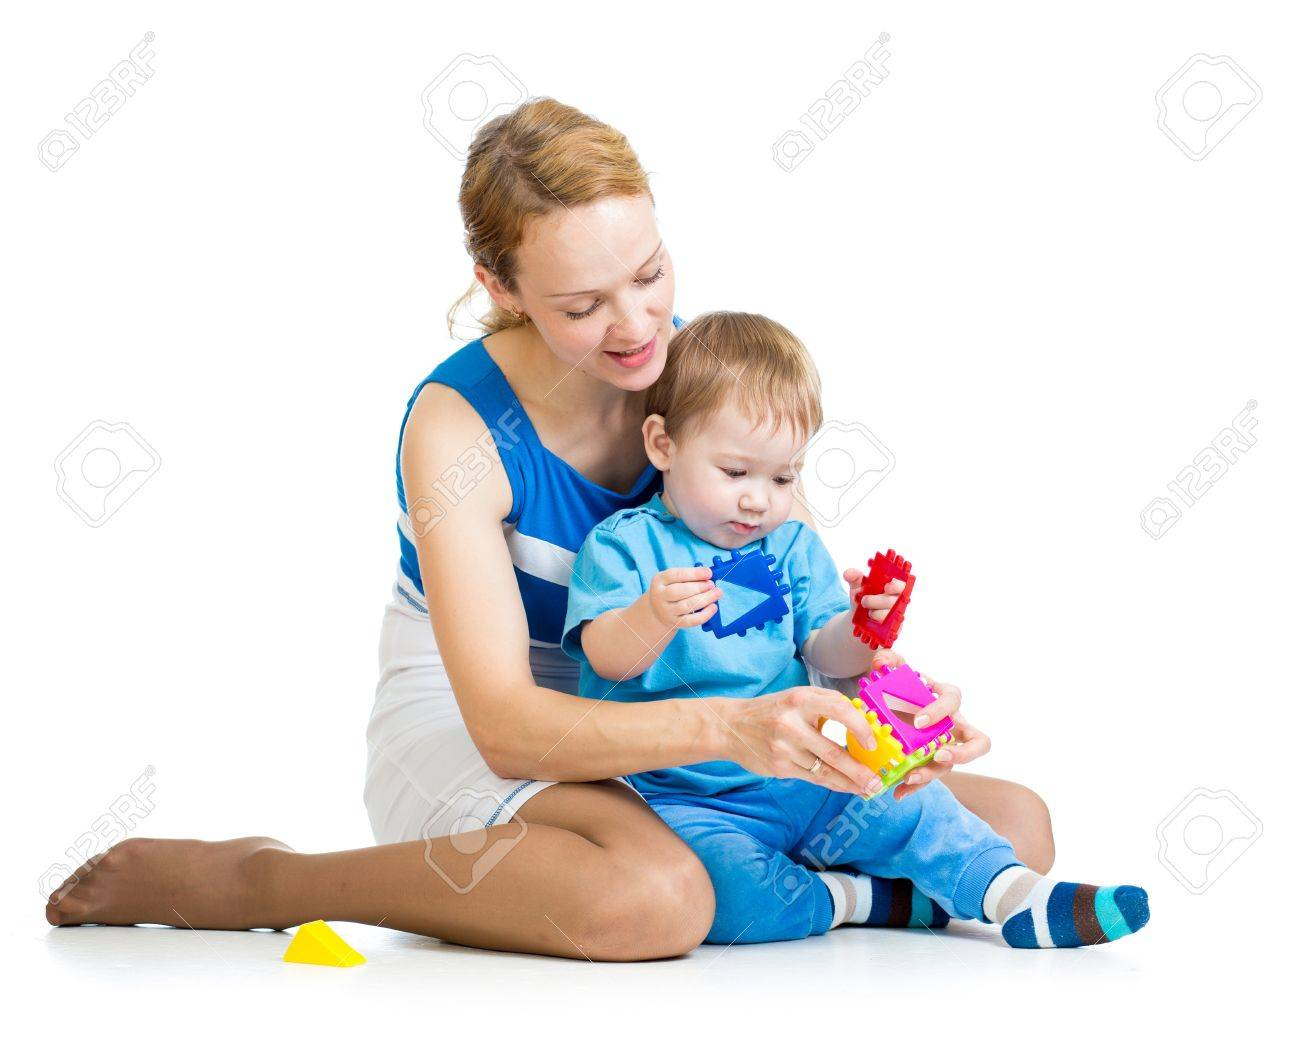 baby boy and mother playing together with puzzle toy Stock Photo - 15586206